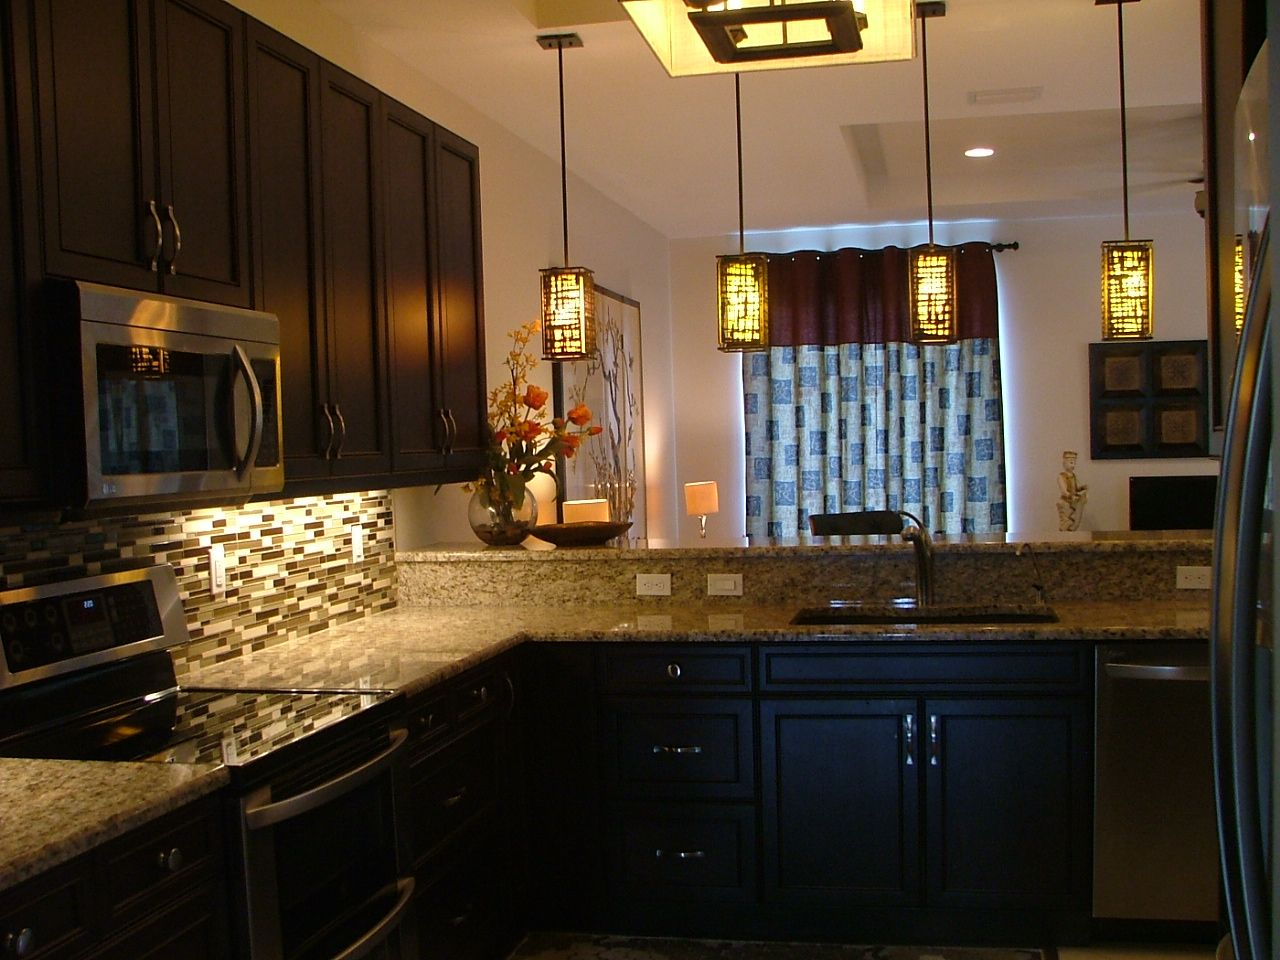 Pictures of kitchen cabinets and granite countertops - Kitchen Specs Espresso Cabinets Granite Countertops Glass Stone Mosaic Tile